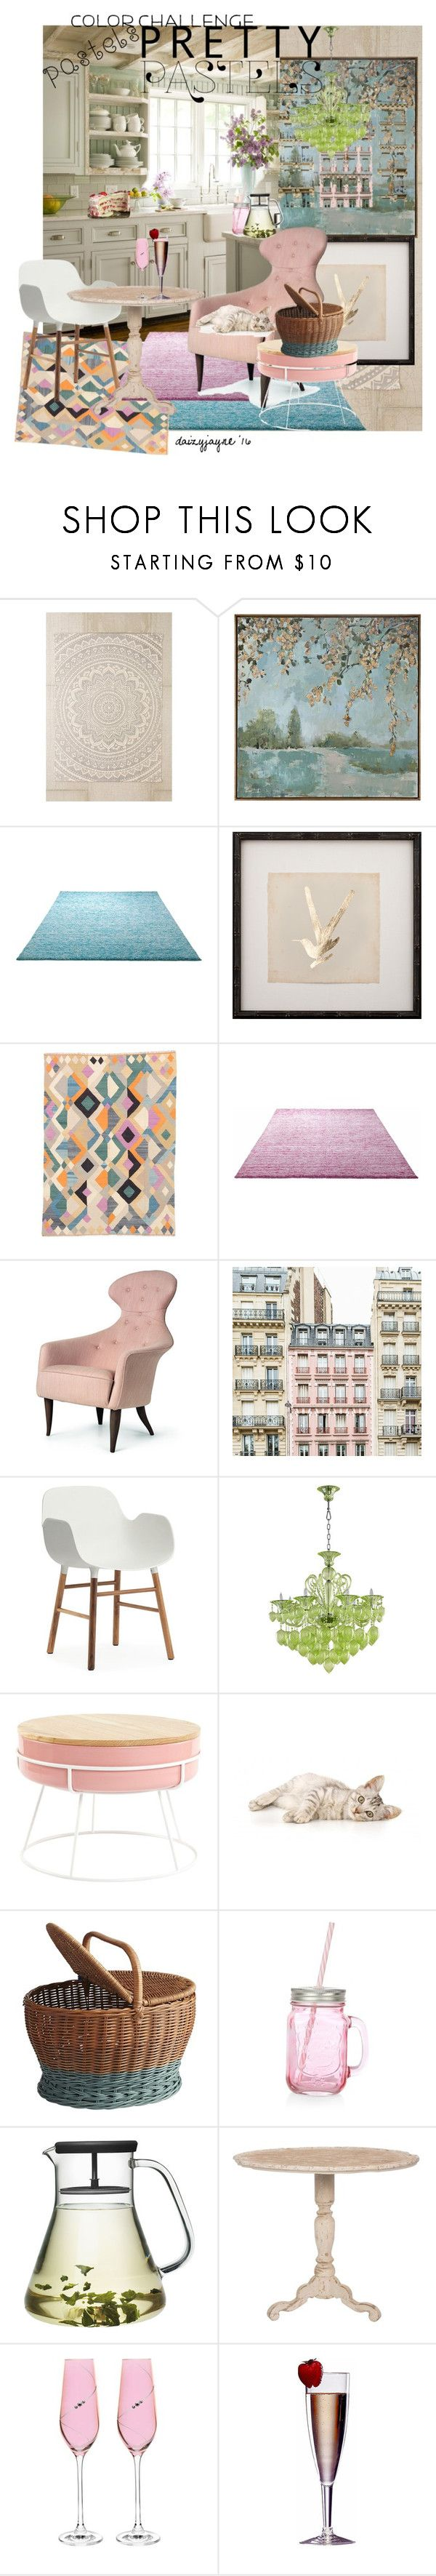 """pretty pastels"" by daizyjayne ❤ liked on Polyvore featuring interior, interiors, interior design, home, home decor, interior decorating, Plum & Bow, Uttermost, ESPRIT and Normann Copenhagen"